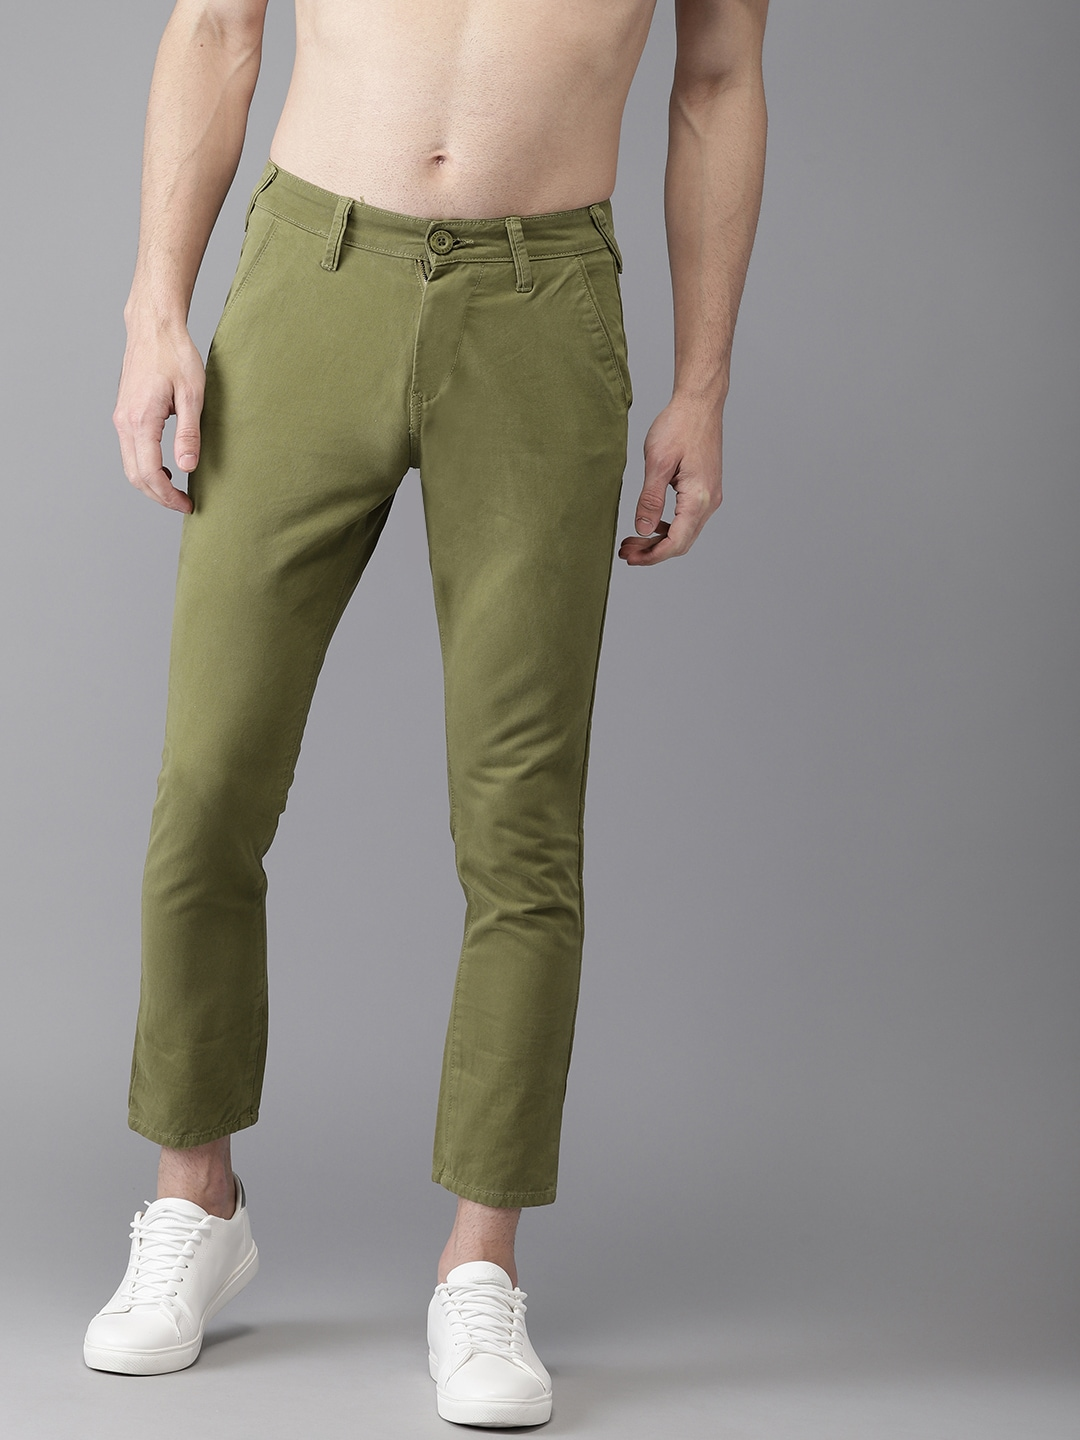 9297c46fc8e6 Chinos - Buy Chinos for Men   Women Online in India